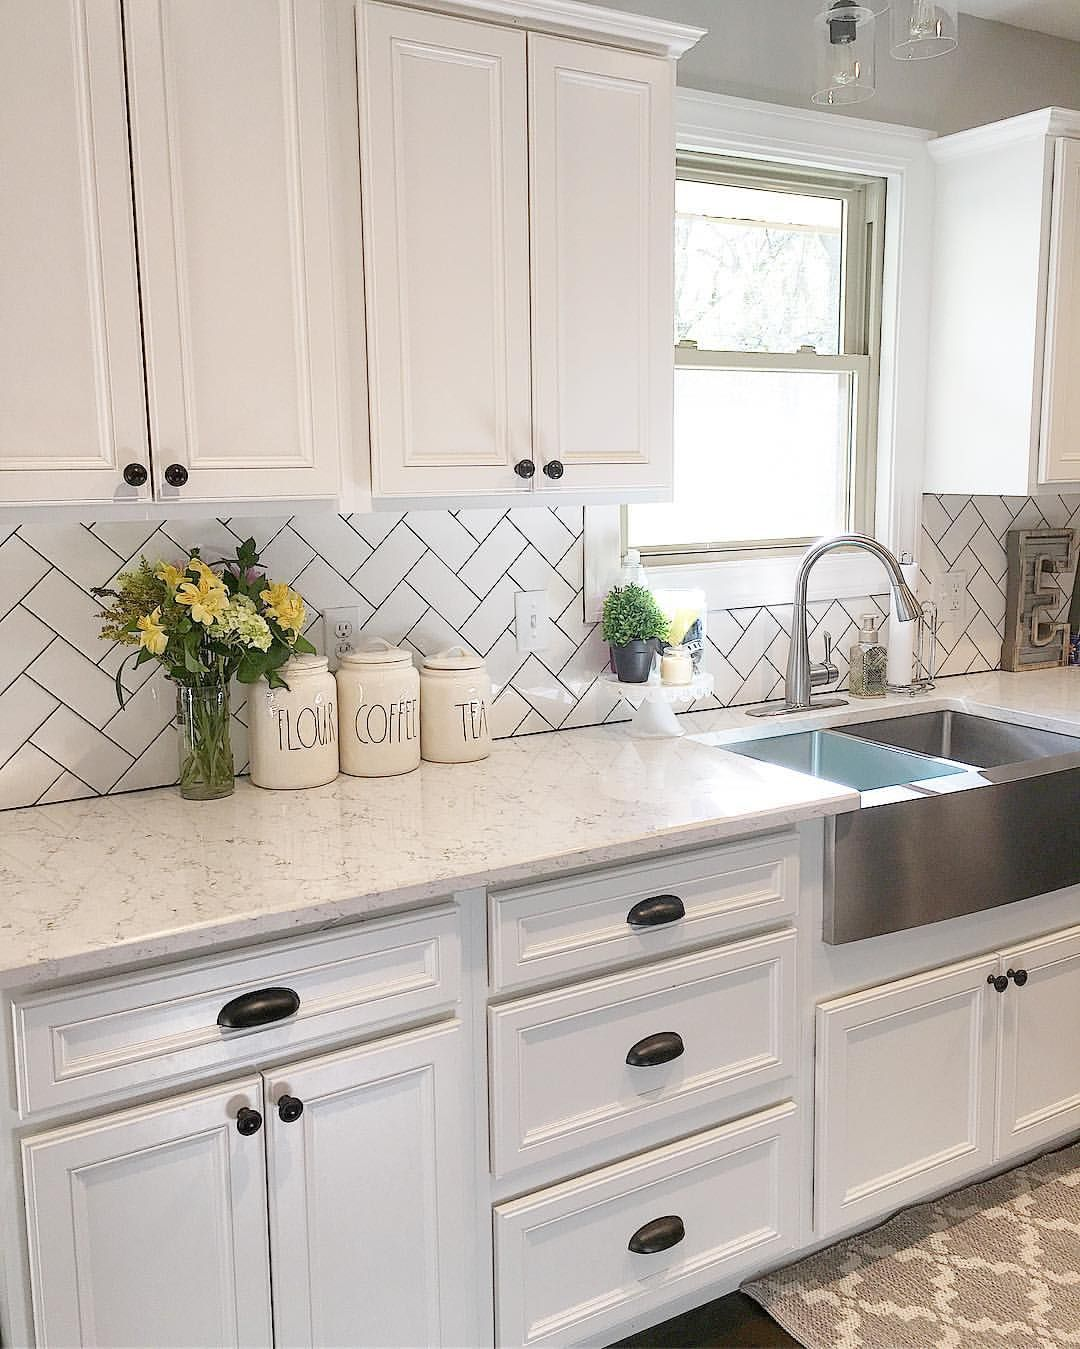 White kitchen kitchen decor subway tile herringbone for White kitchen cabinets black hardware